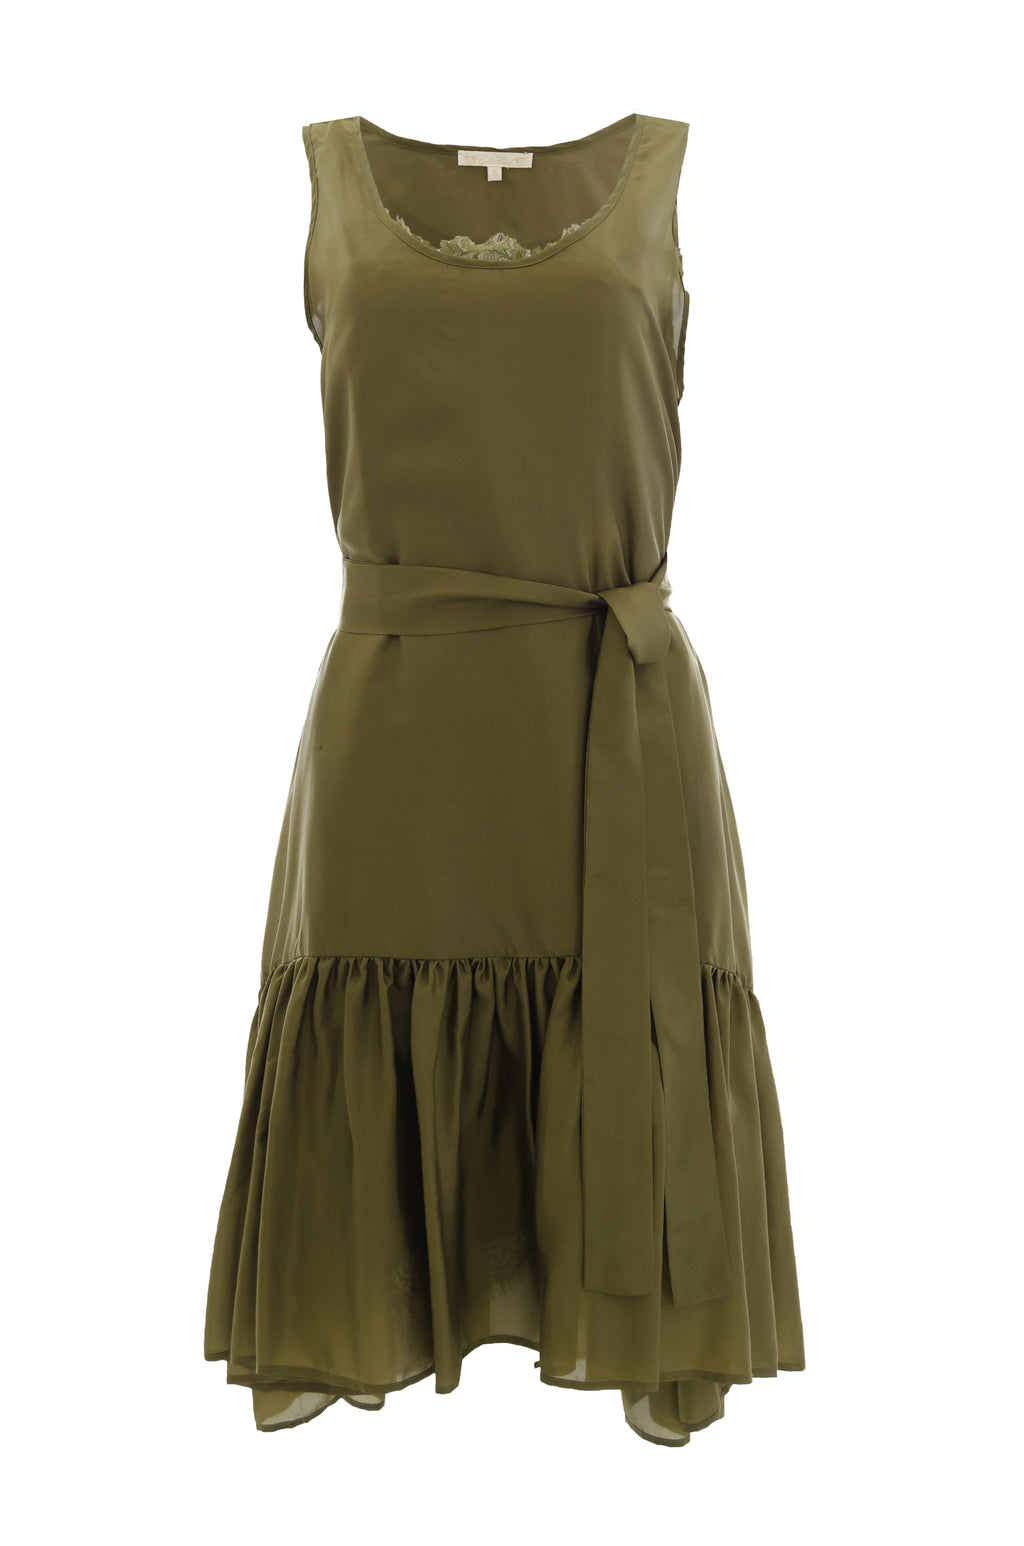 The Habotai Silk Tank Dress in olive. Worn with matching sash as belt.